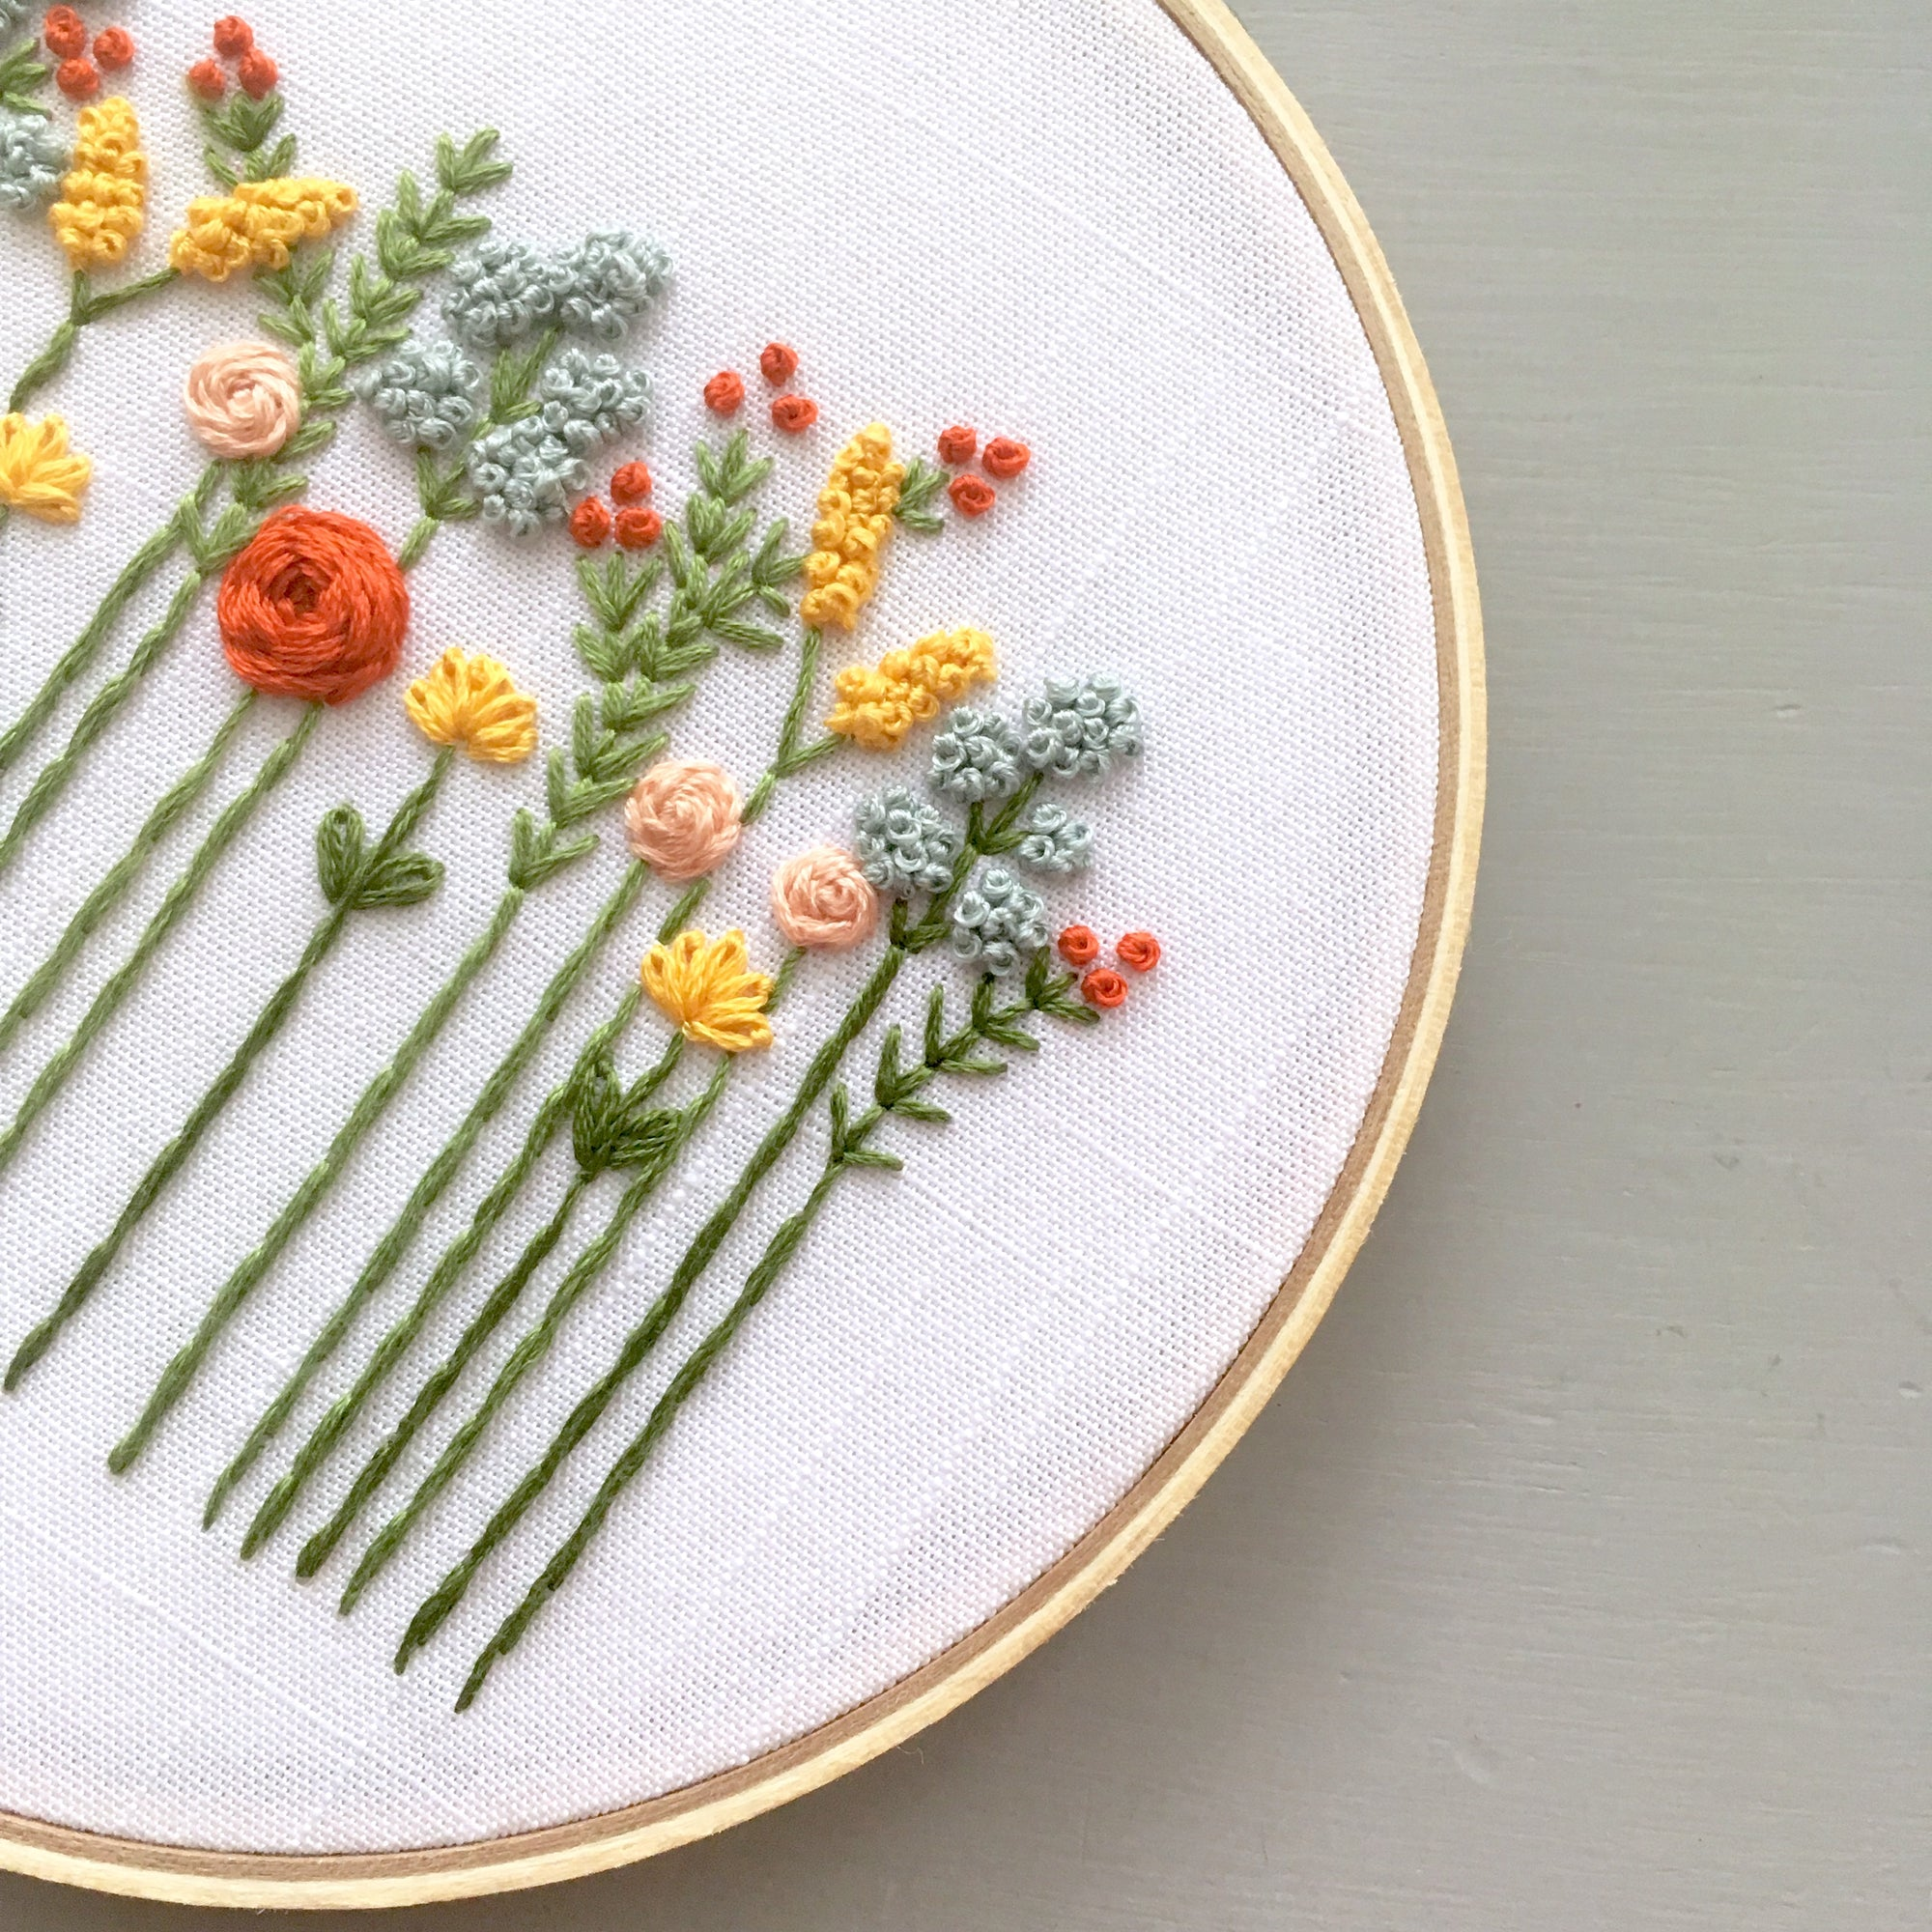 THE WILDFLOWER COLLECTION BY AND OTHER ADVENTURES EMBROIDERY CO